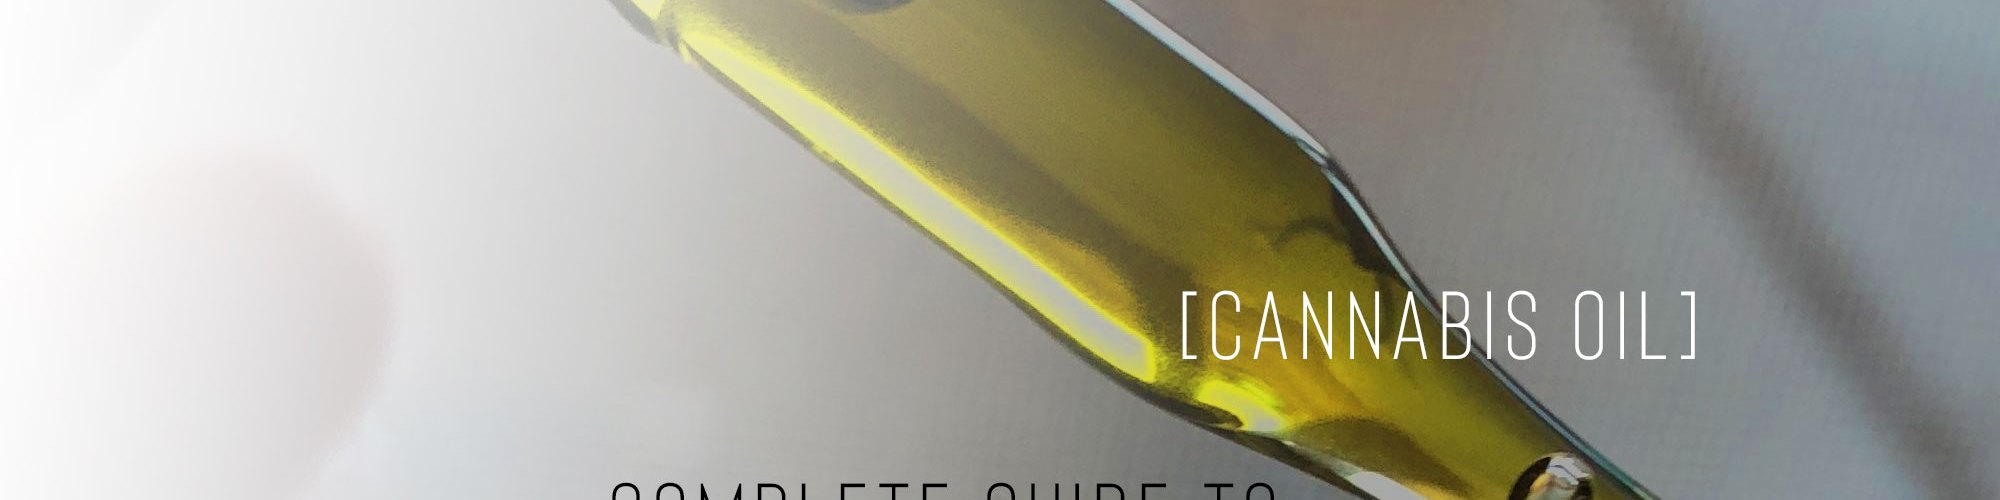 cannabis oil complete guide to potency and quality